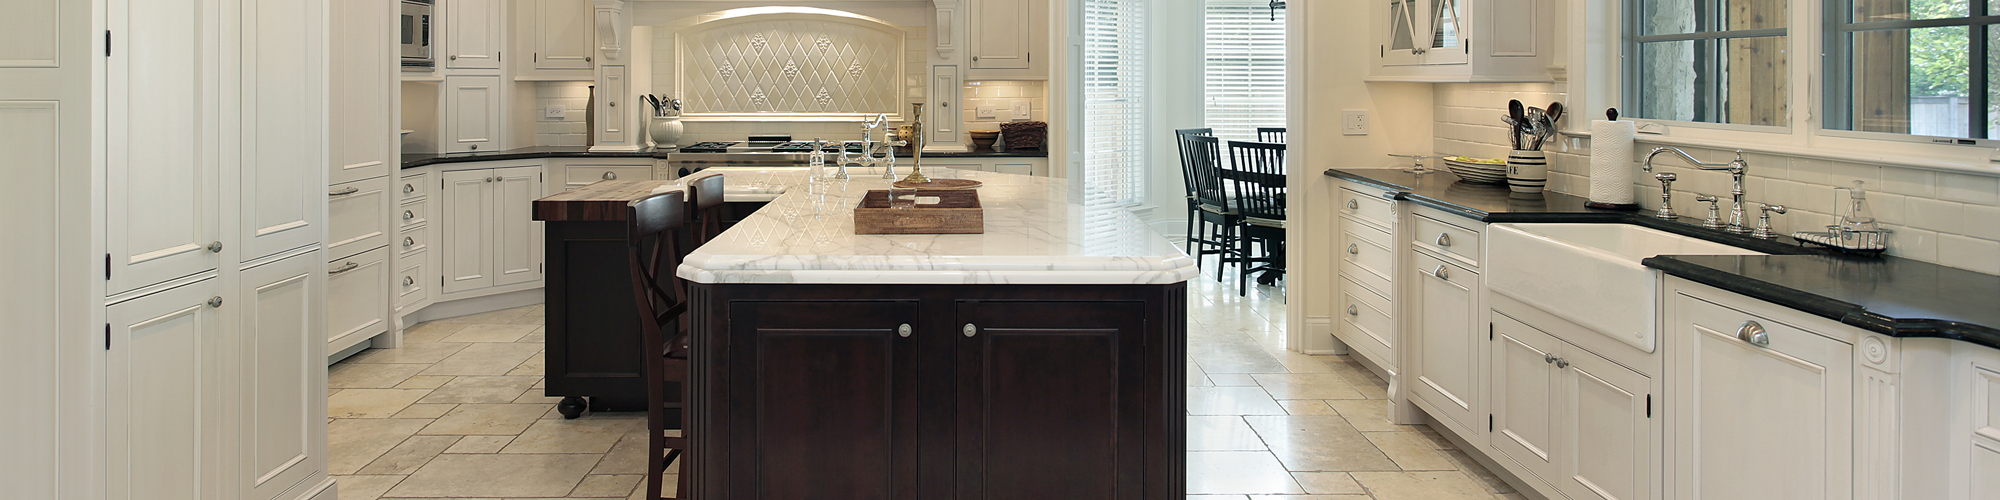 Cabinetry World